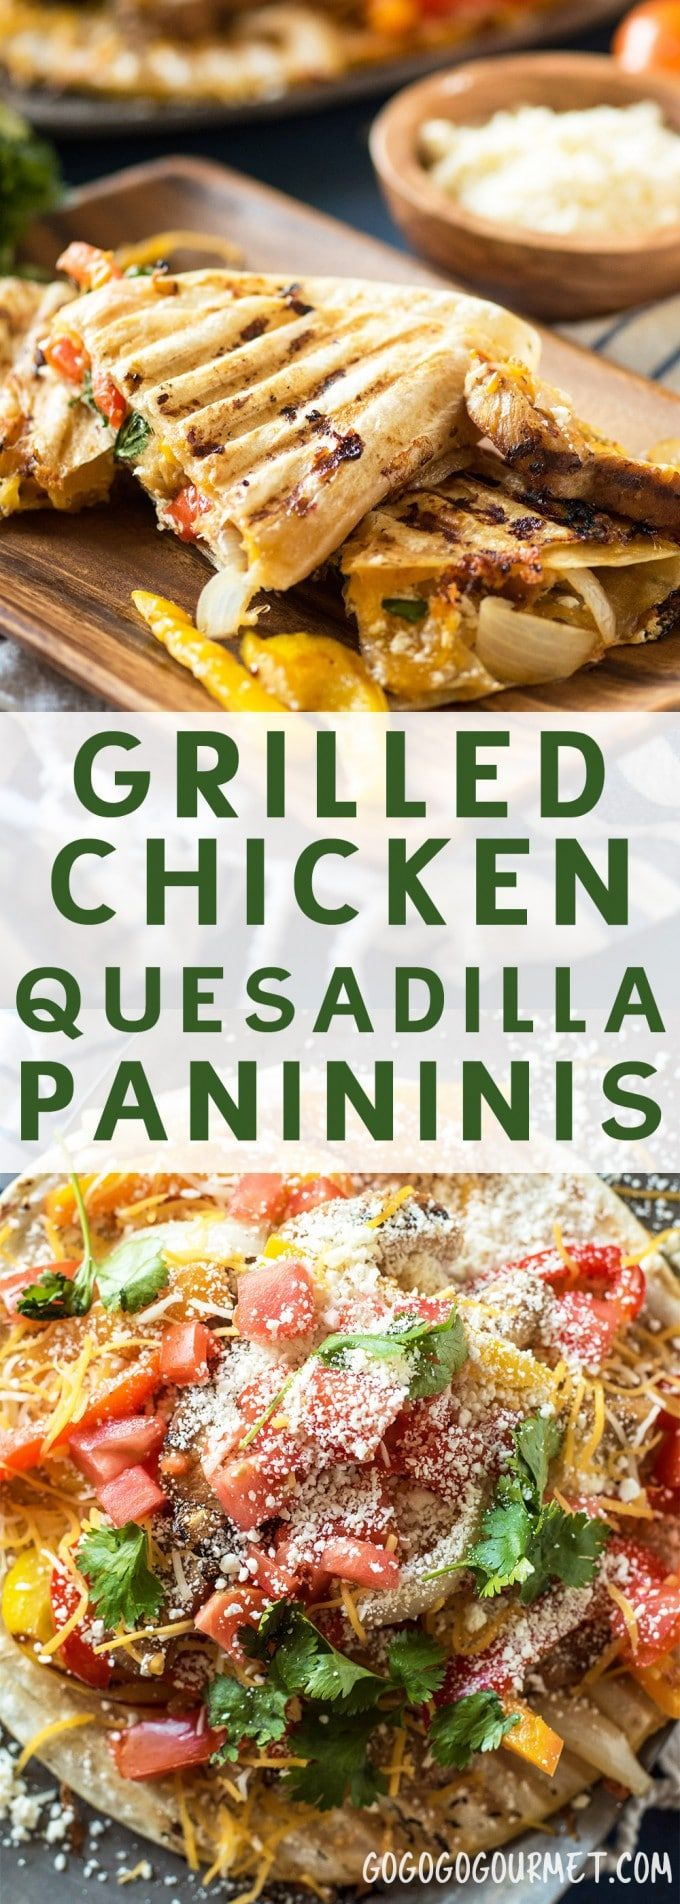 Grilled Chicken Quesadilla Paninis are a great weeknight meal- fast, convenient, tasty and NO dishes!! via @gogogogourmet [ad]